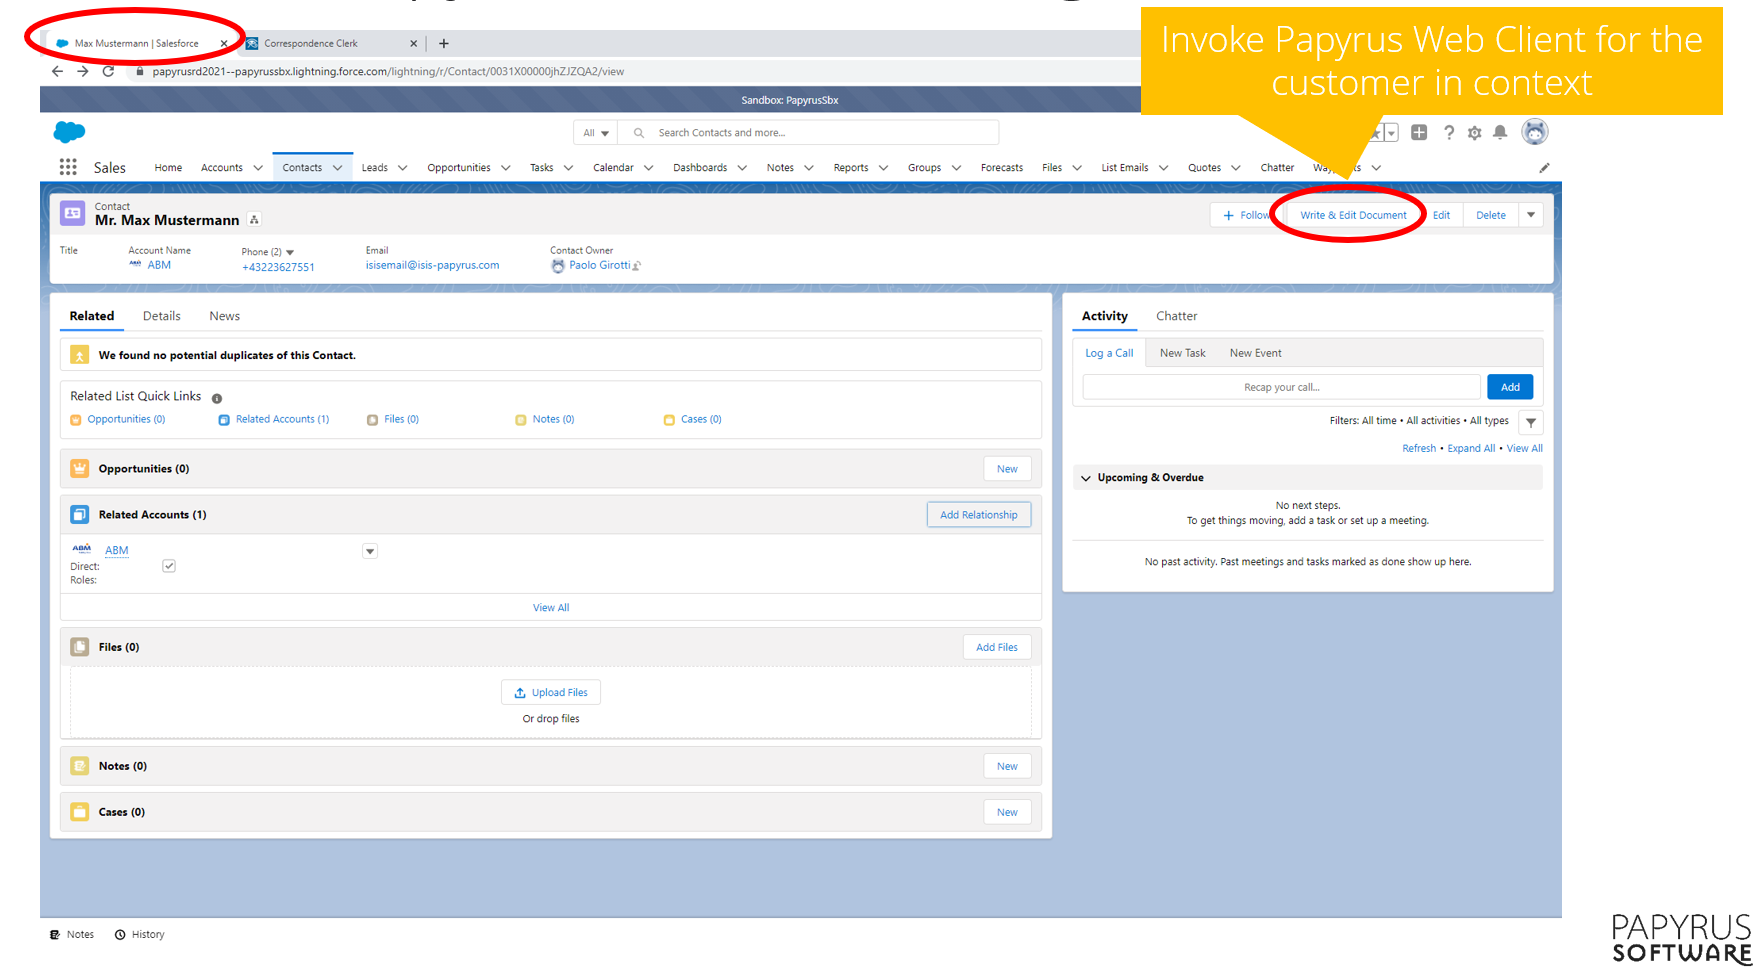 Papyrus integration with Salesforce